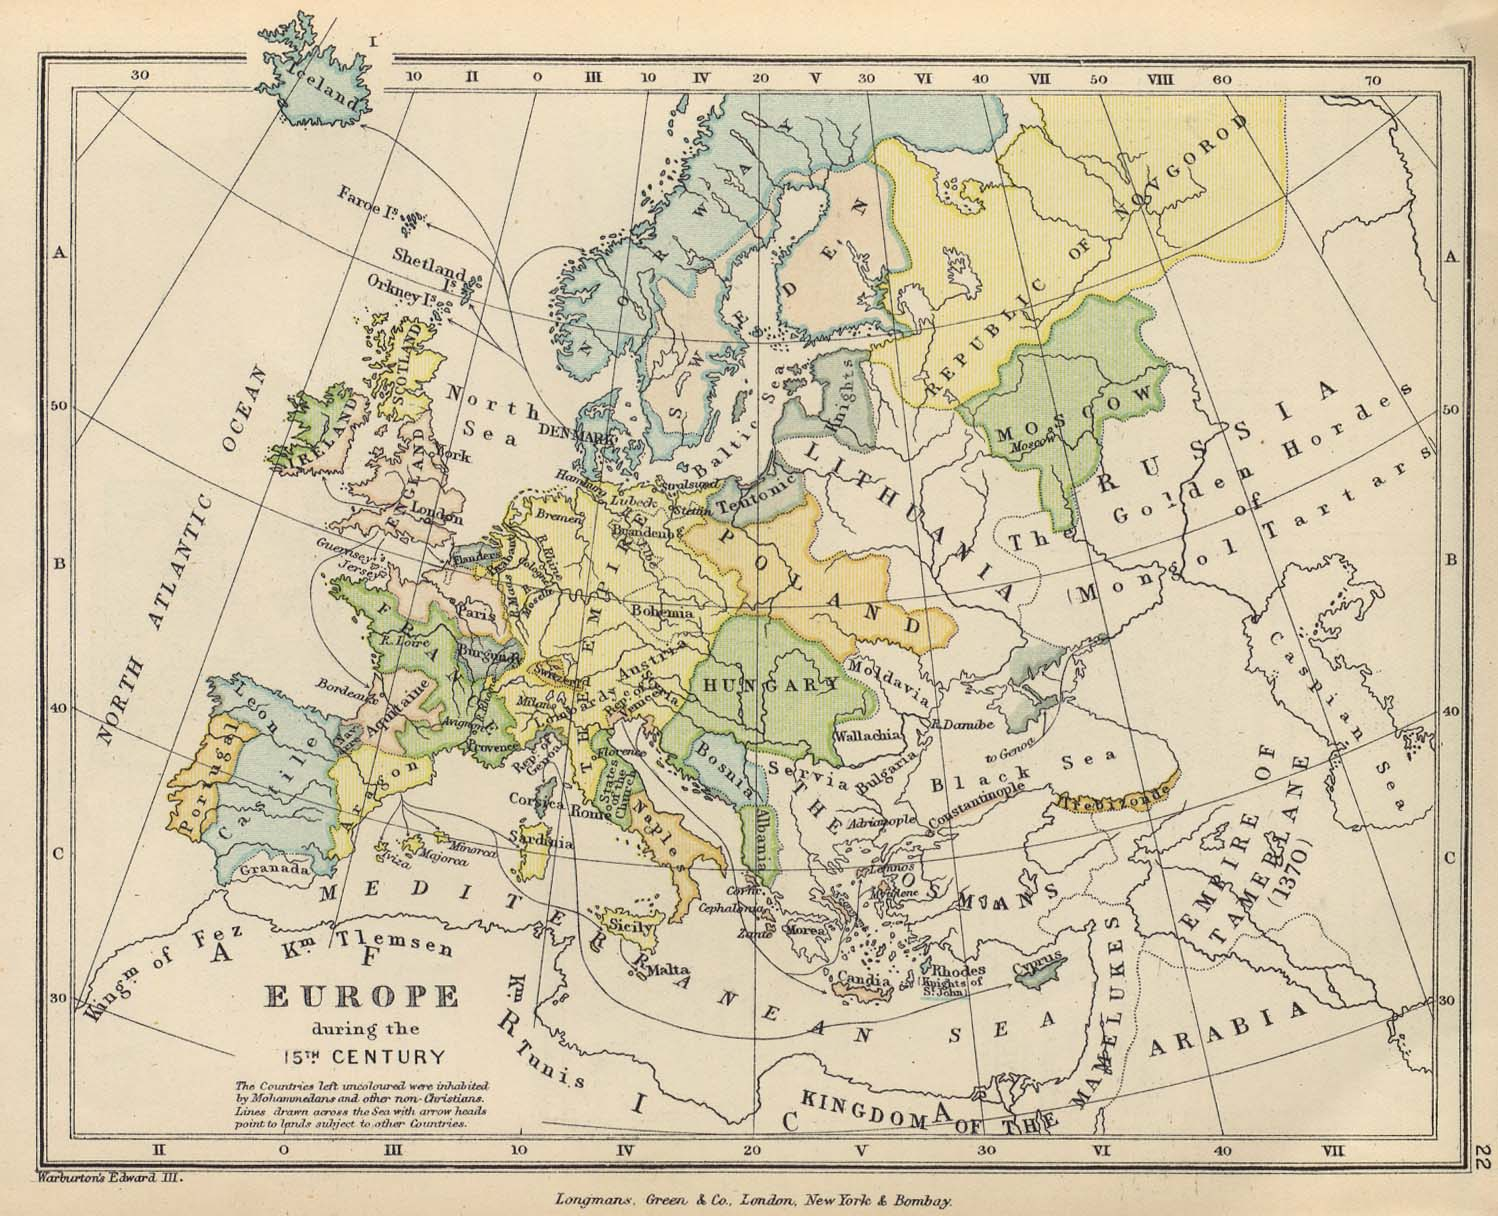 Europe Historical Maps PerryCastañeda Map Collection UT - Germany map in europe